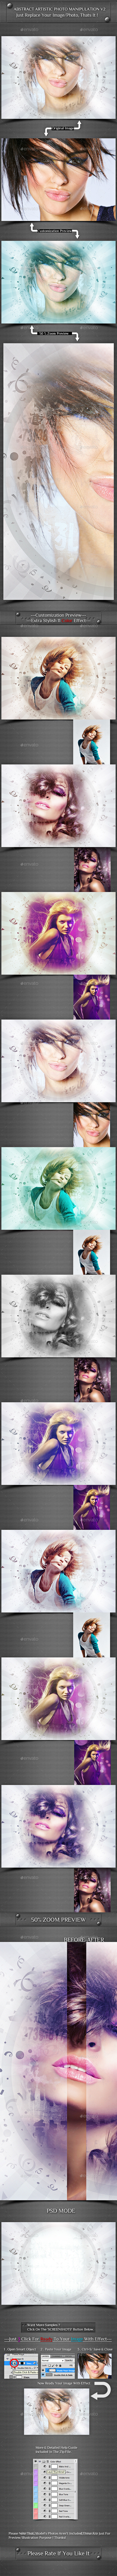 Abstract Artistic Photo Manipulation V2 - Artistic Photo Templates